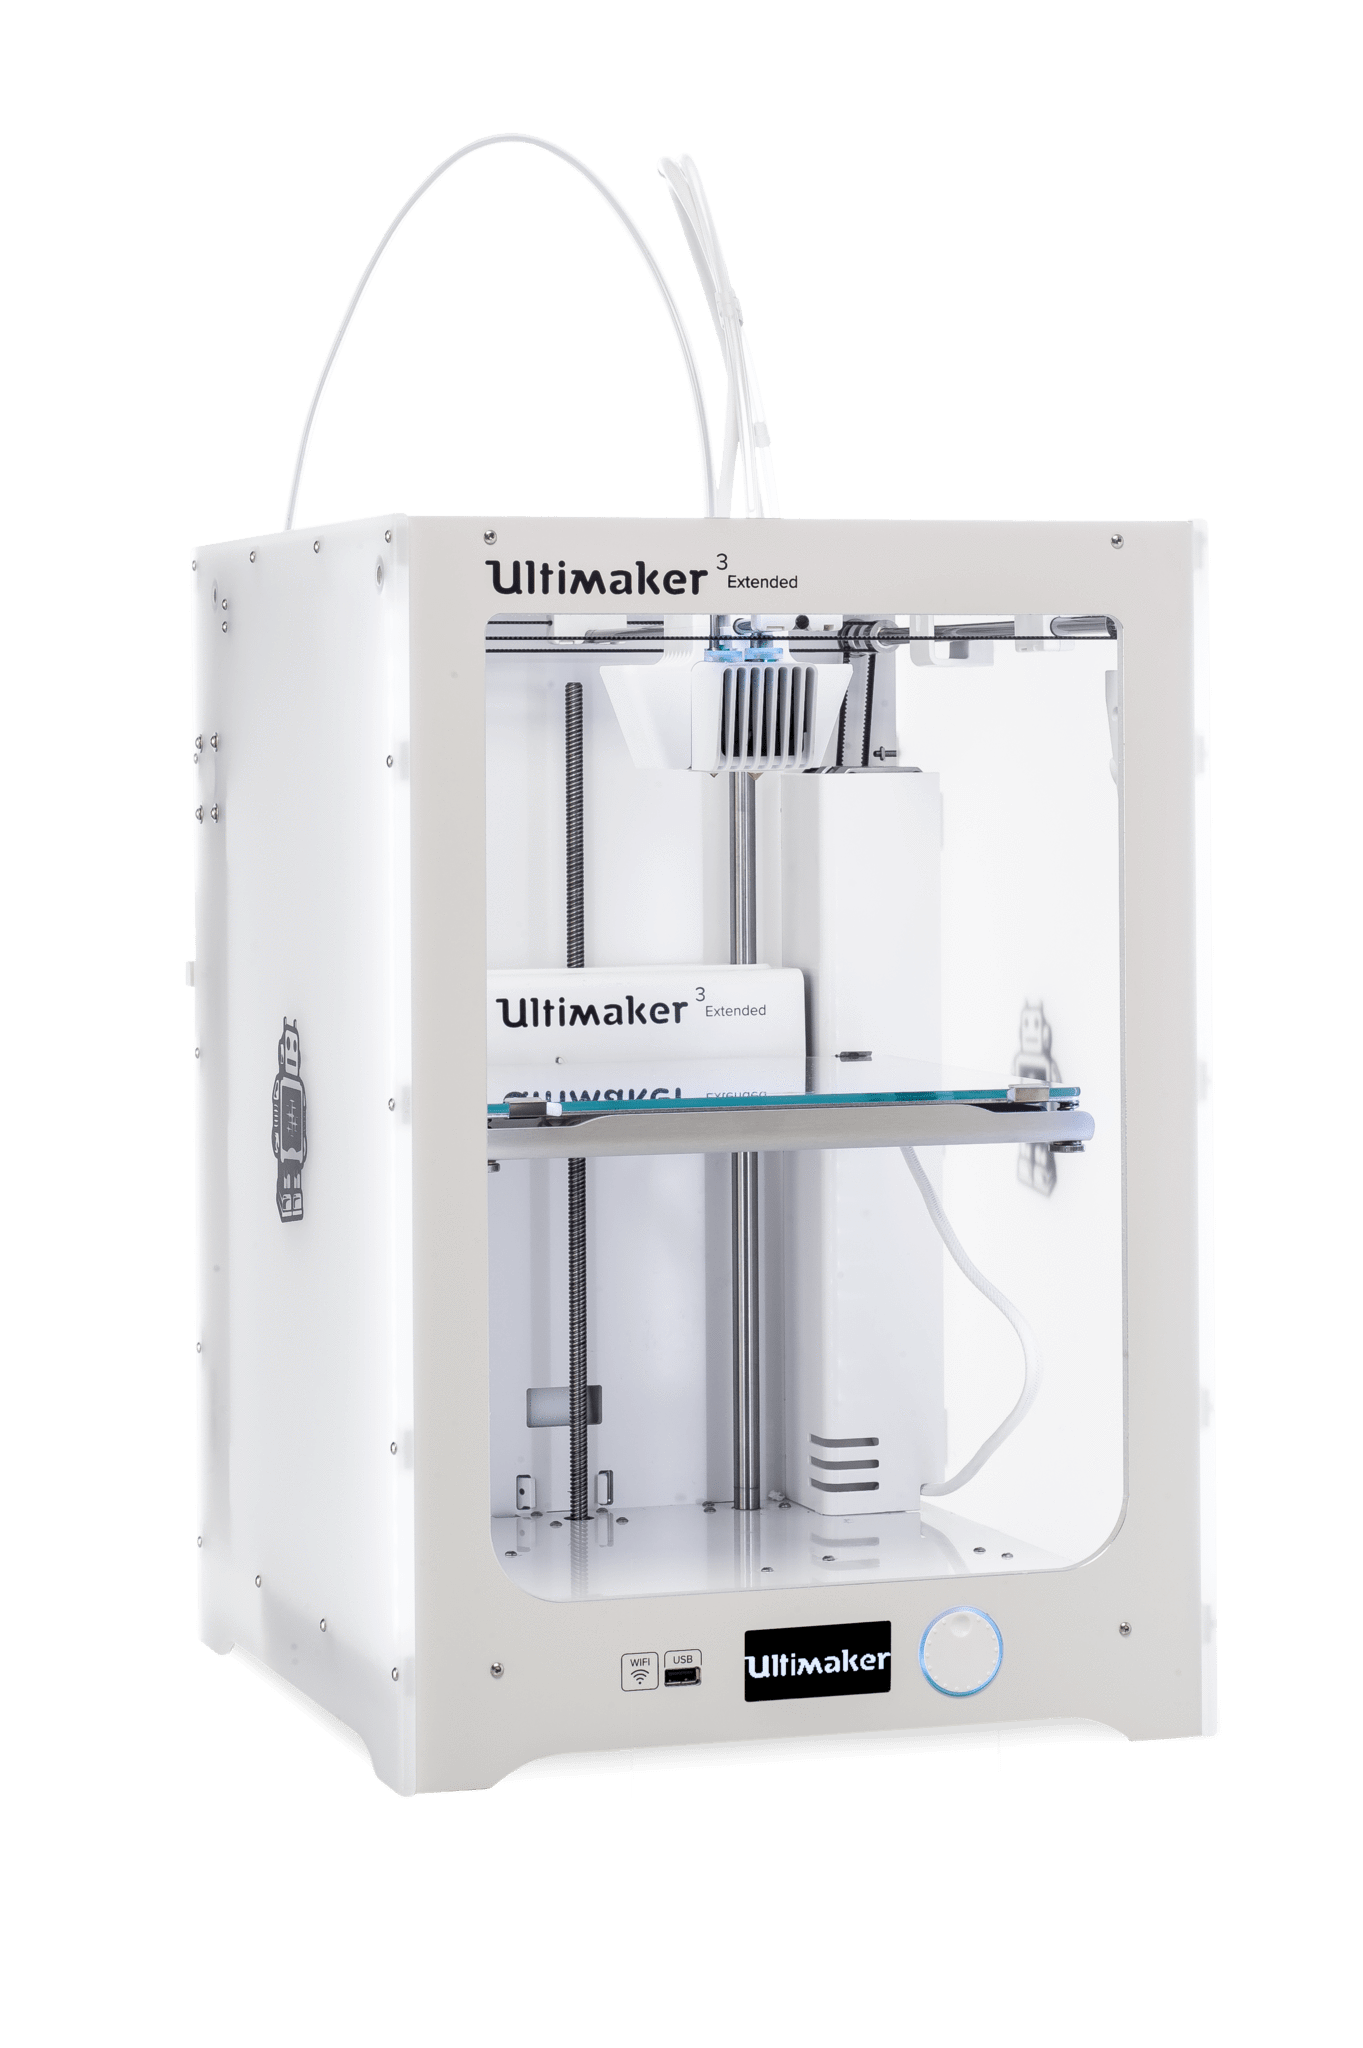 Ultimaker_3_Extended_21.png